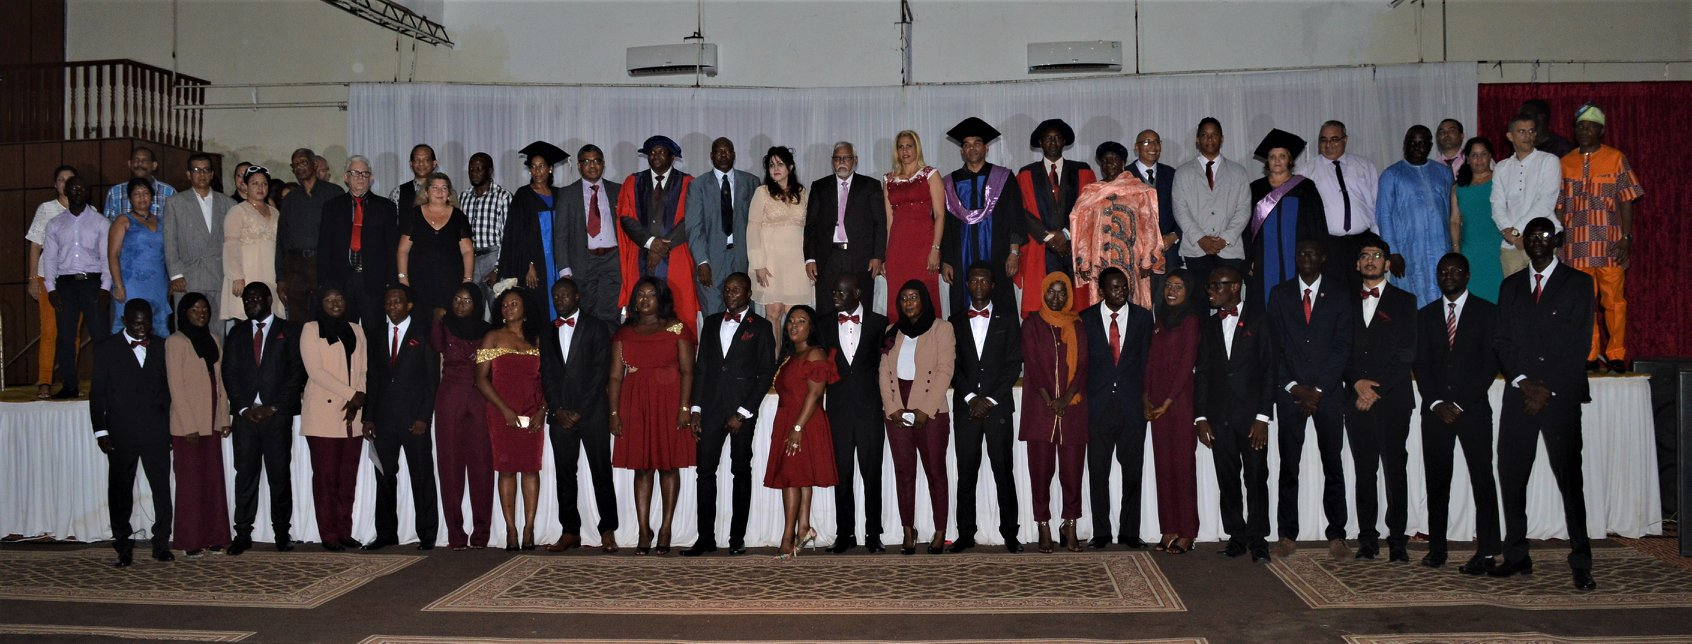 Graduation of 22 Medical Students into the Medical Profession